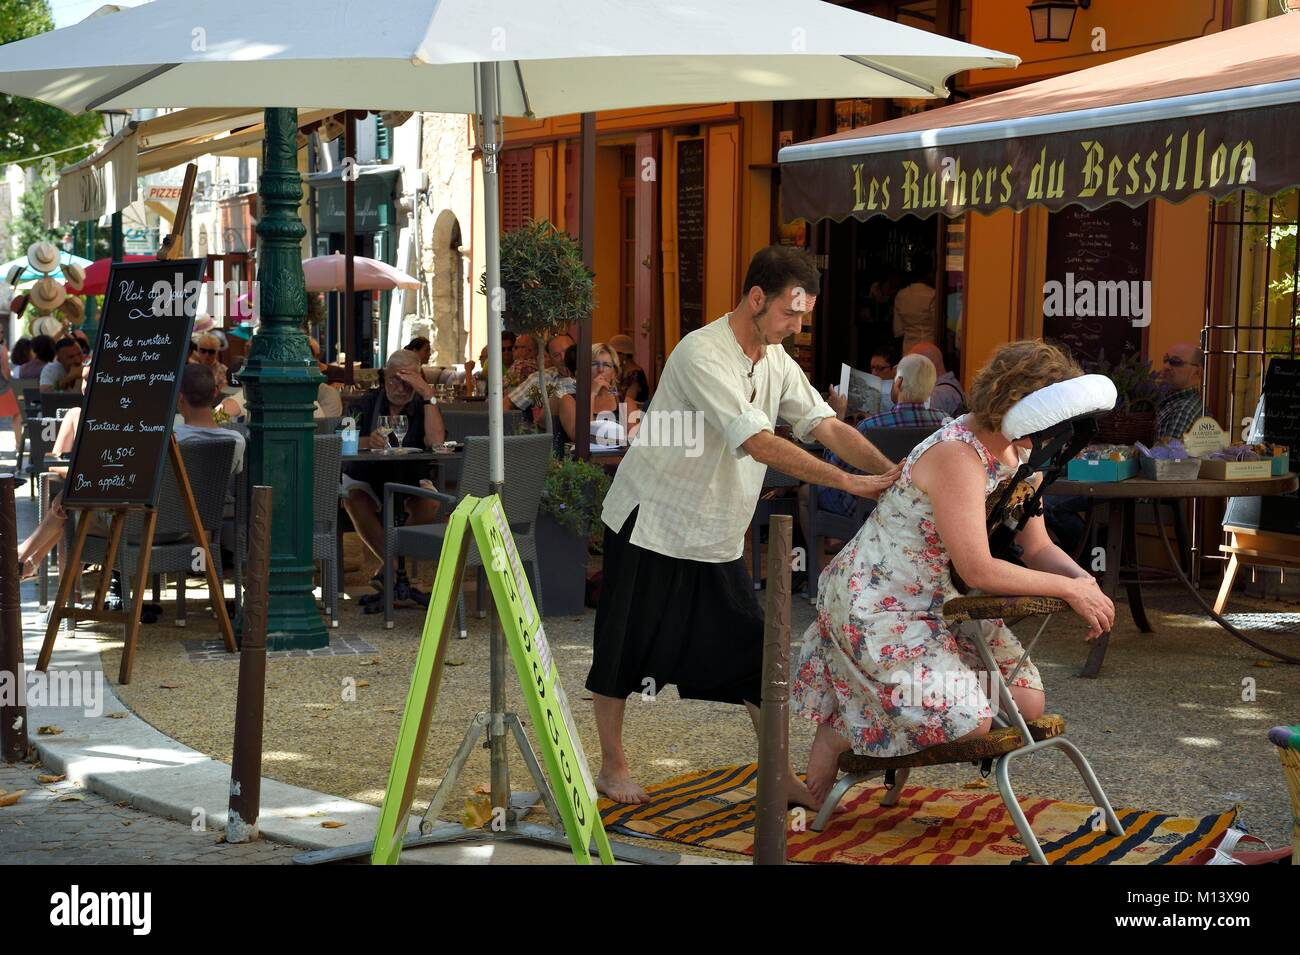 France, Var, Provence Verte, Cotignac, market day on the main square, massage in the street - Stock Image